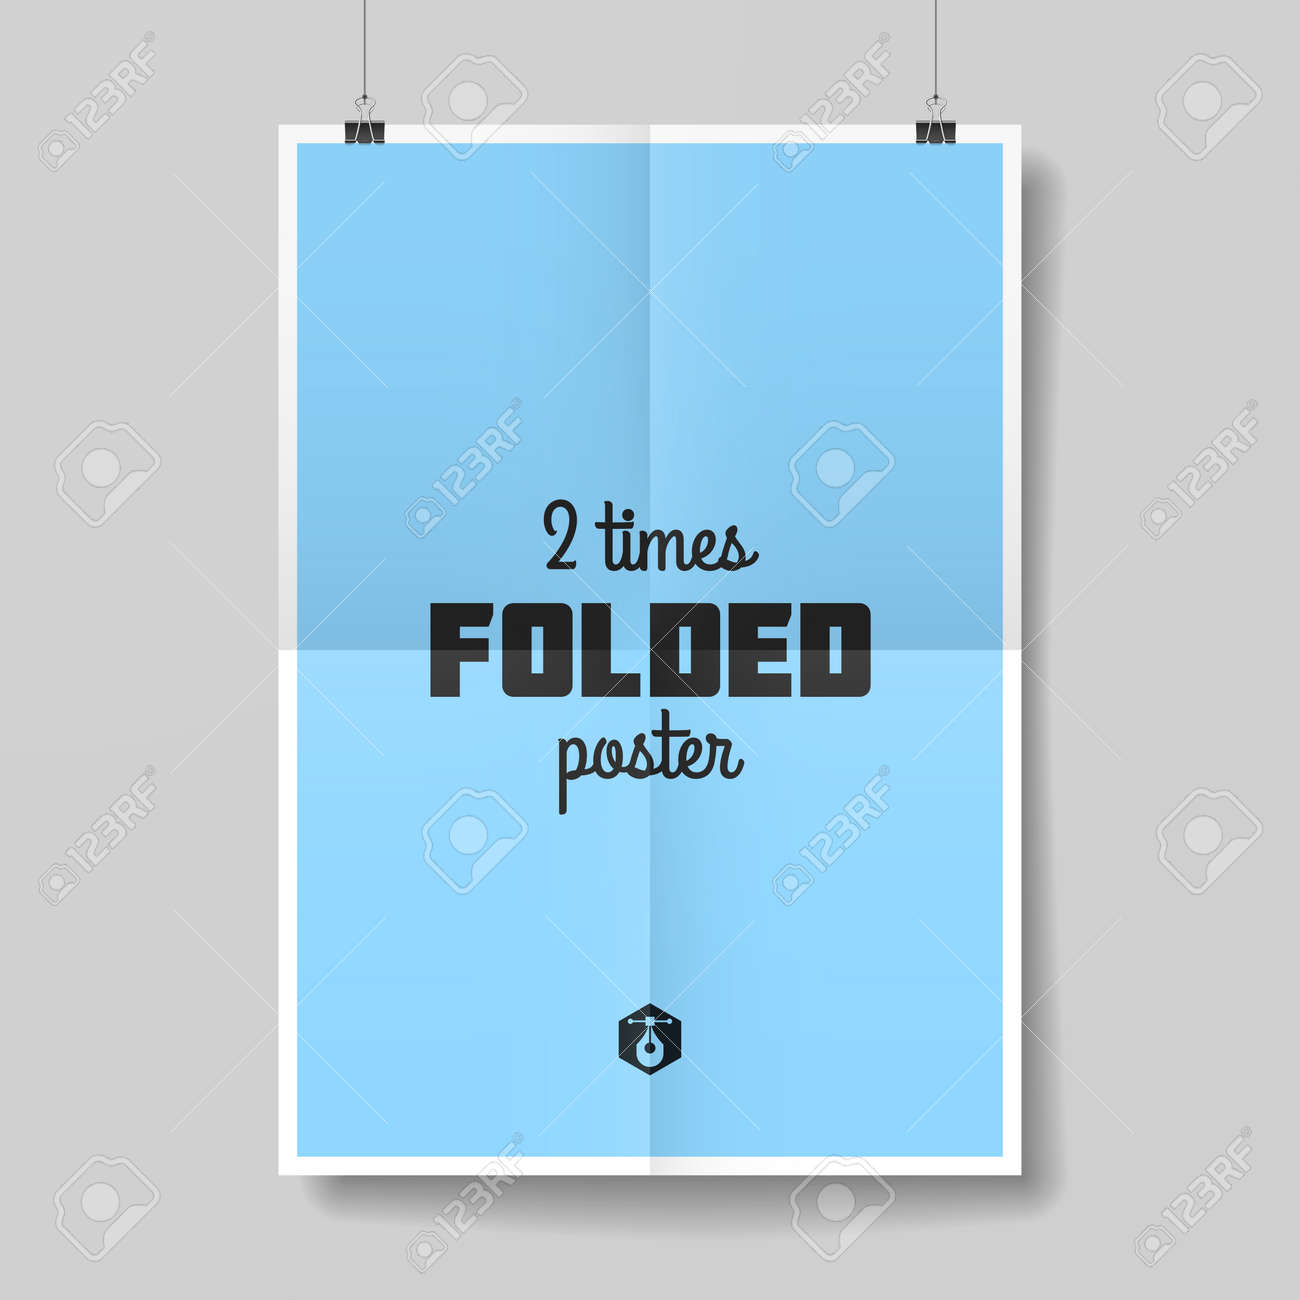 Two times folded poster template - 31437748